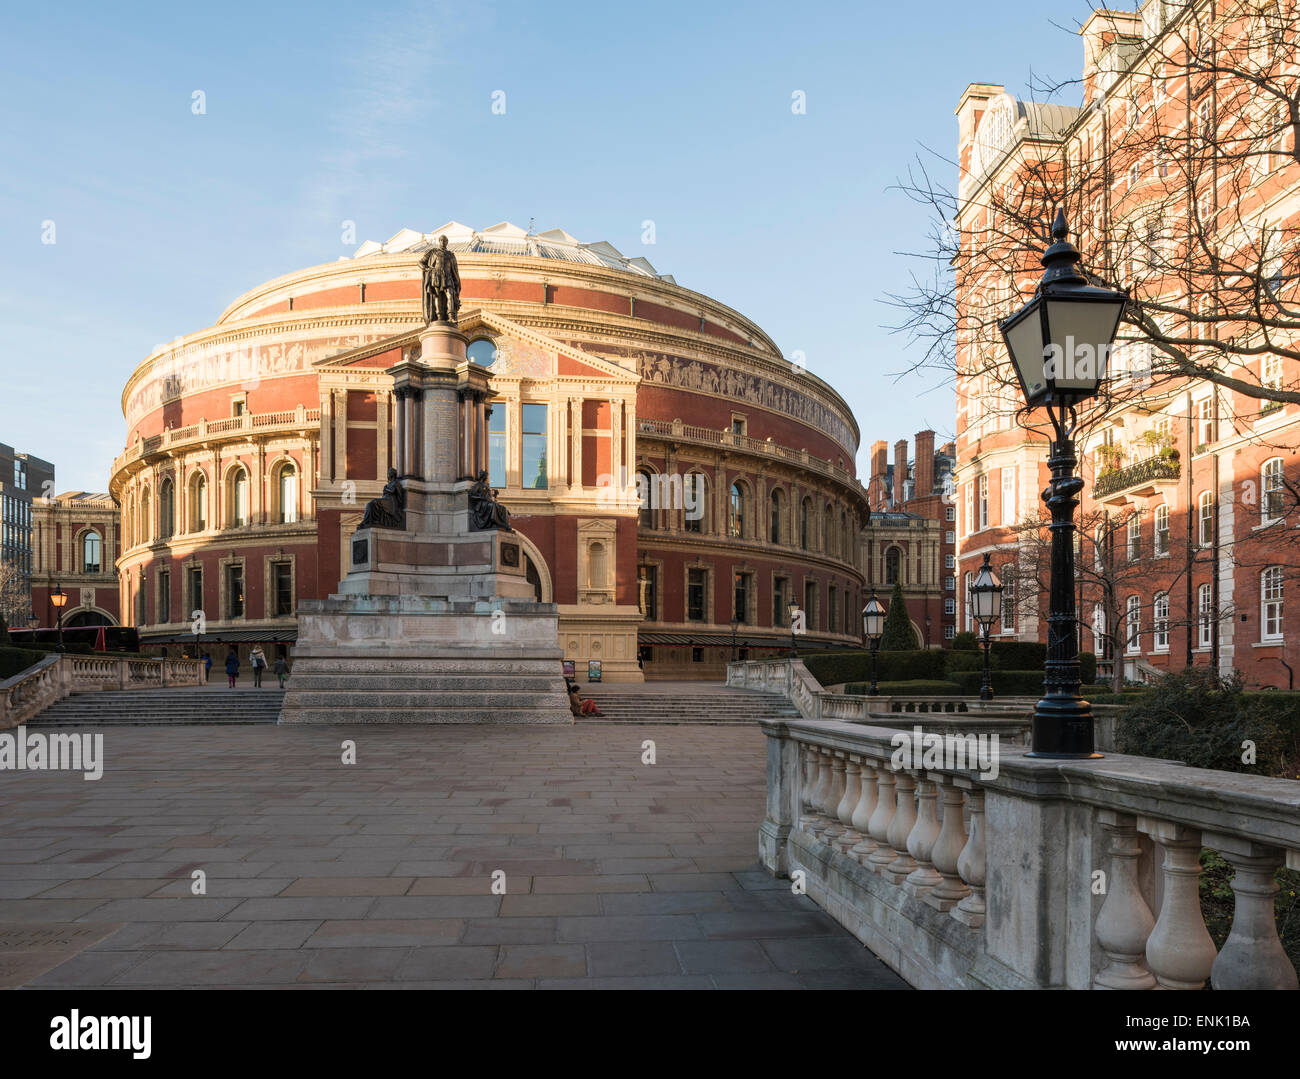 Exterior of the Royal Albert Hall, Kensington, London, England, United Kingdom, Europe - Stock Image